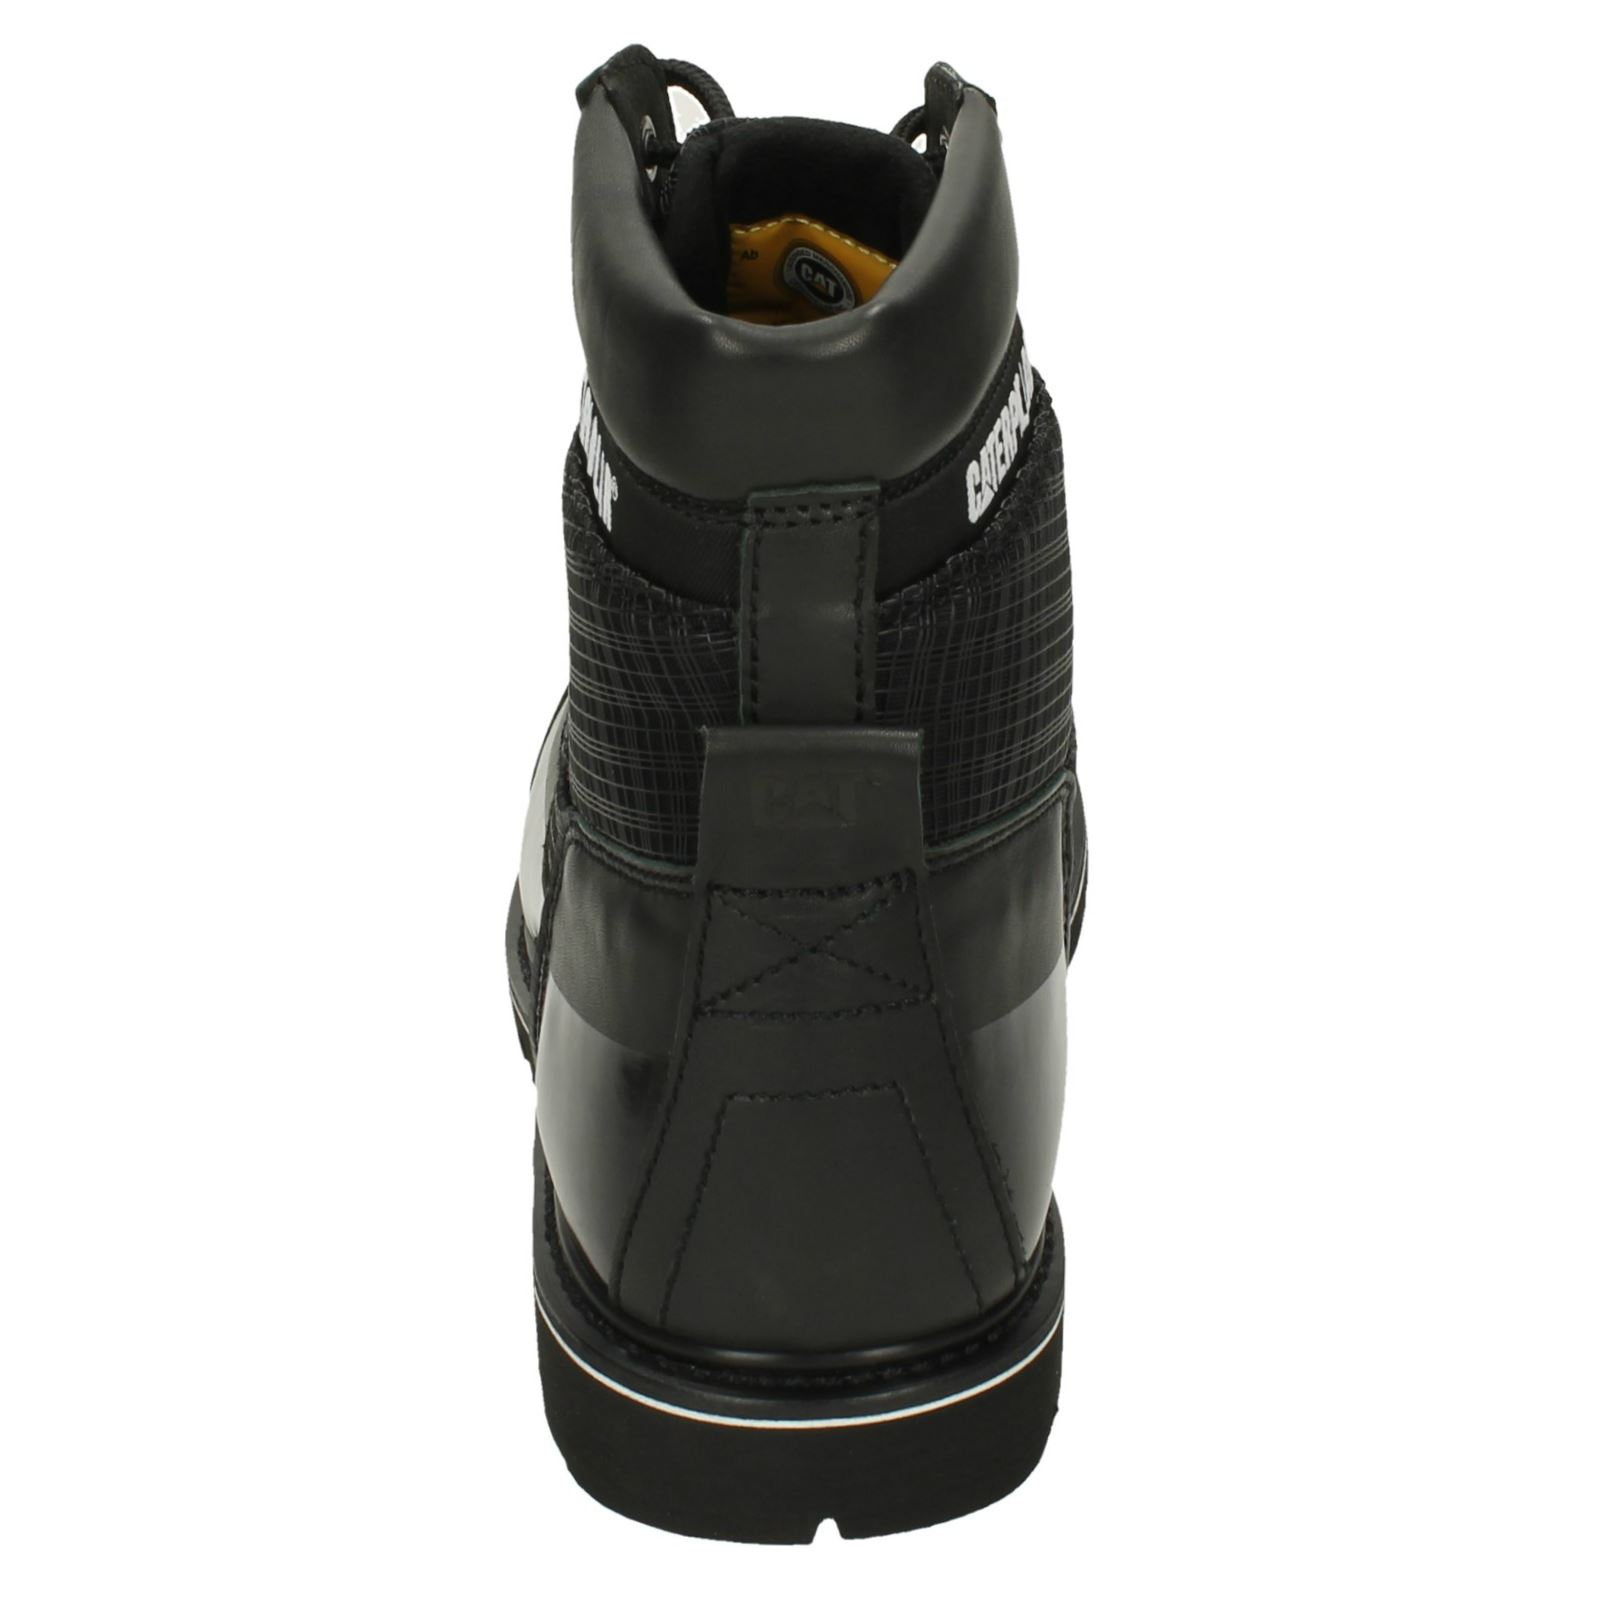 Hommes Weldon Bottines Cat Cat Bottines Noir xBqWIU